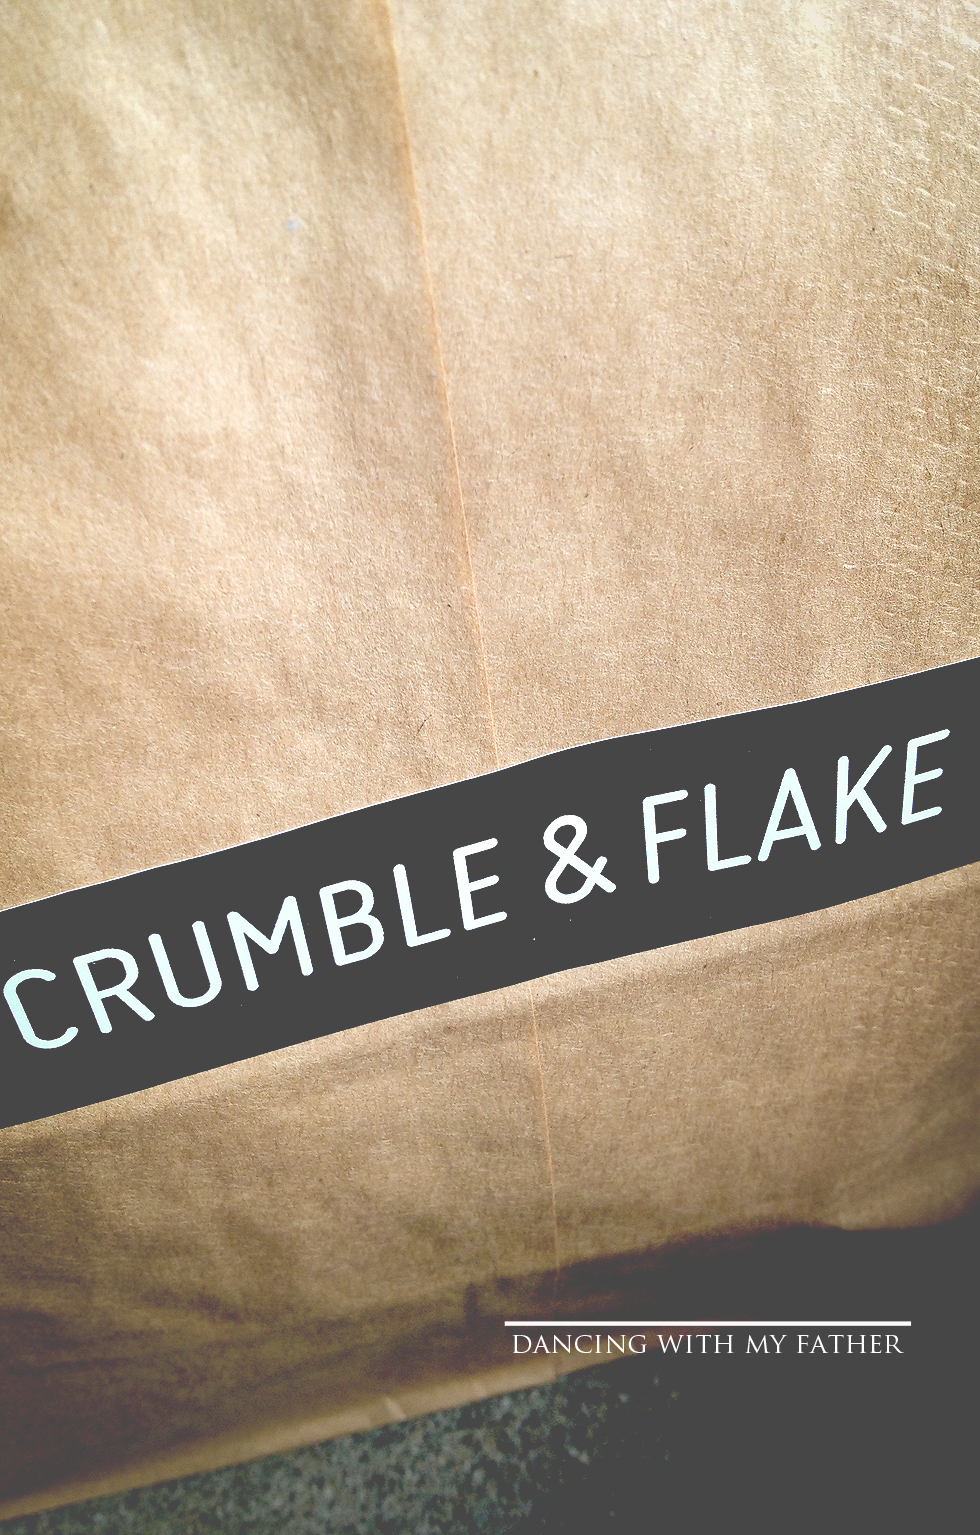 seattle pastry crumble & flake dancing with my father b